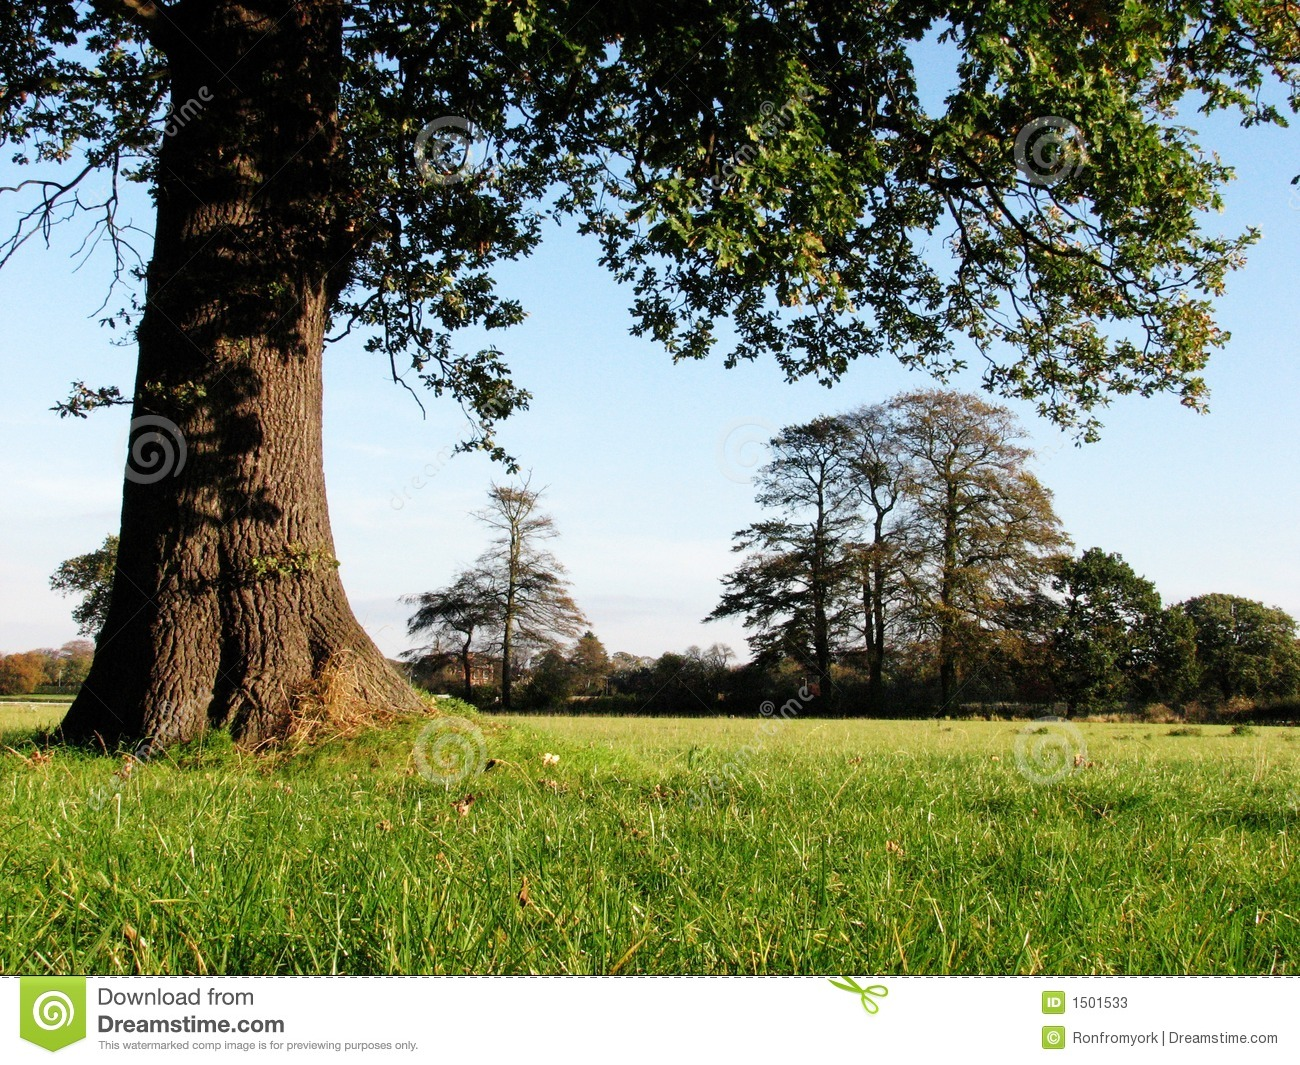 Grassy Field With Trees Stock Image. Image Of Seasons